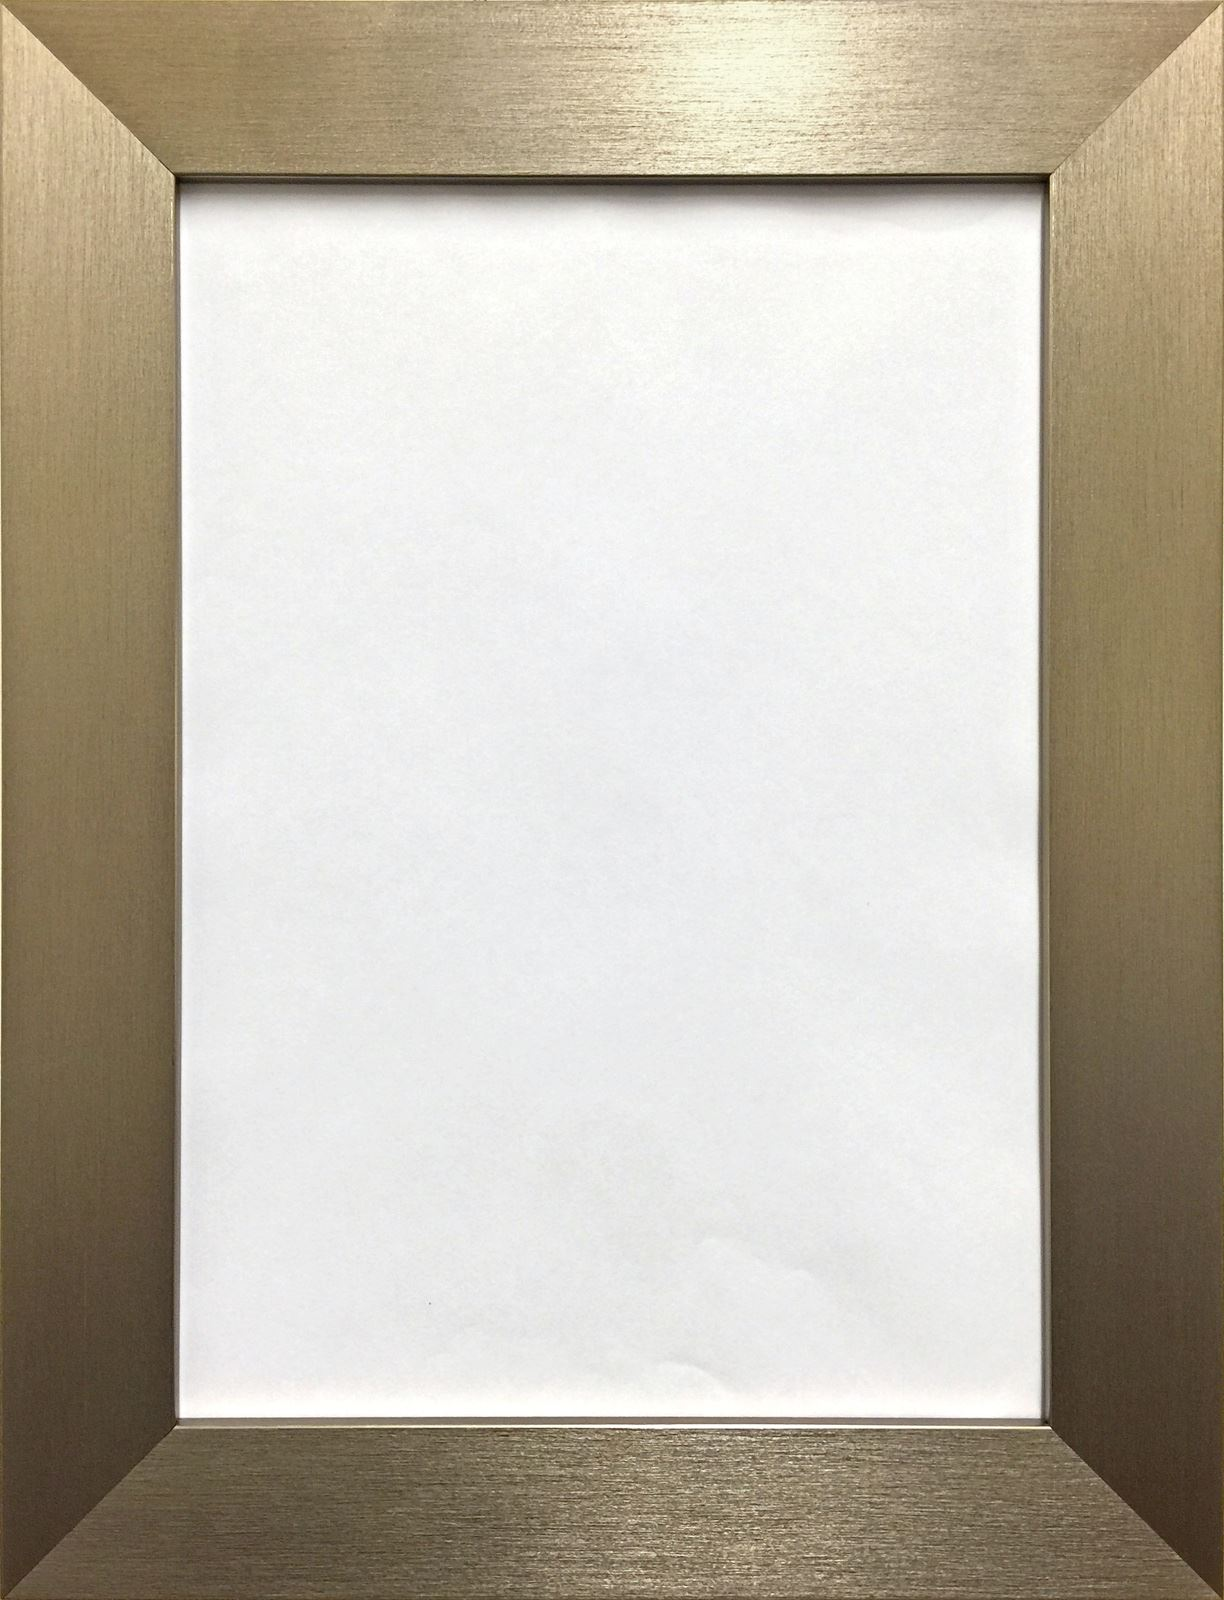 New Poster Photo Picture Frame Flat Brushed Finish Wide Molding | eBay